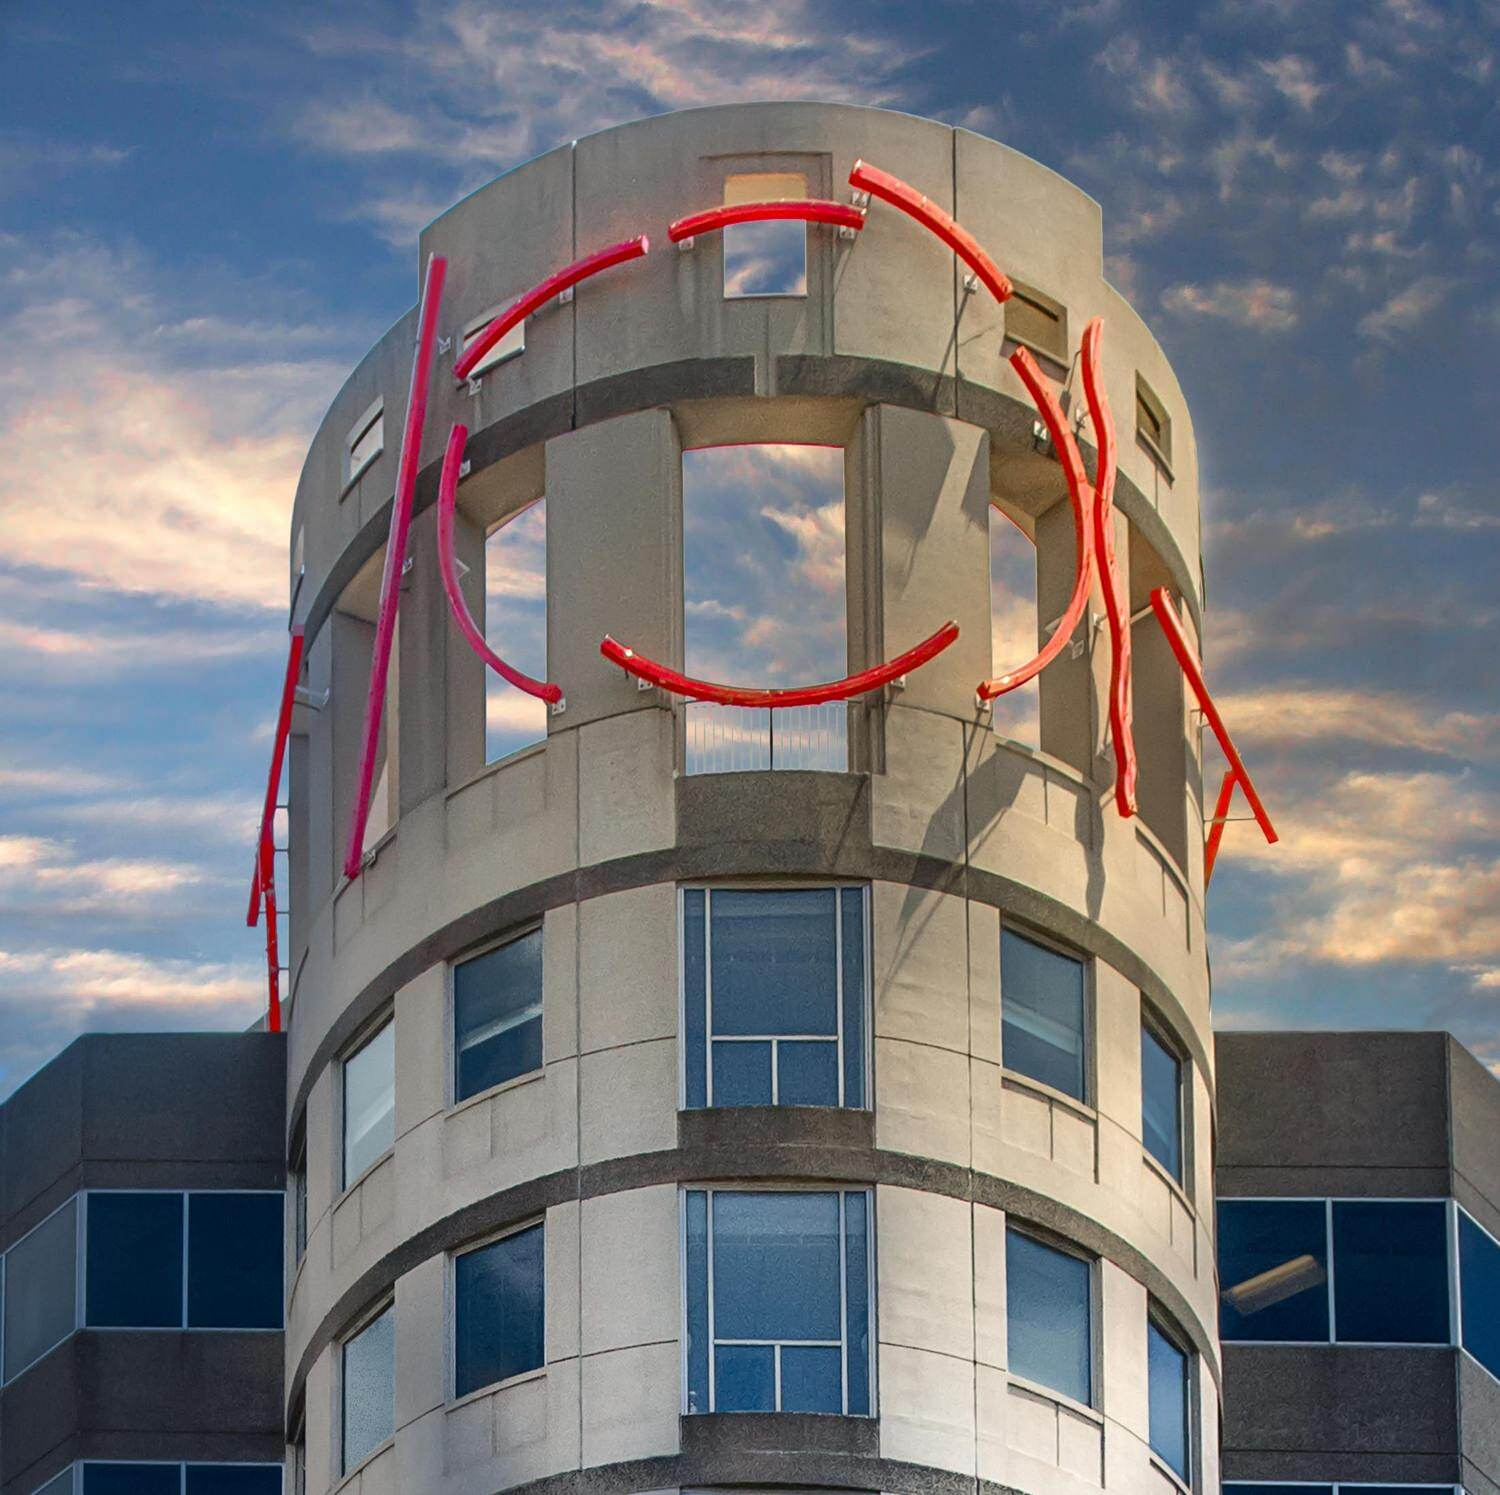 A tall building that has a circular shape on the front of it and glass windows looking out from it.